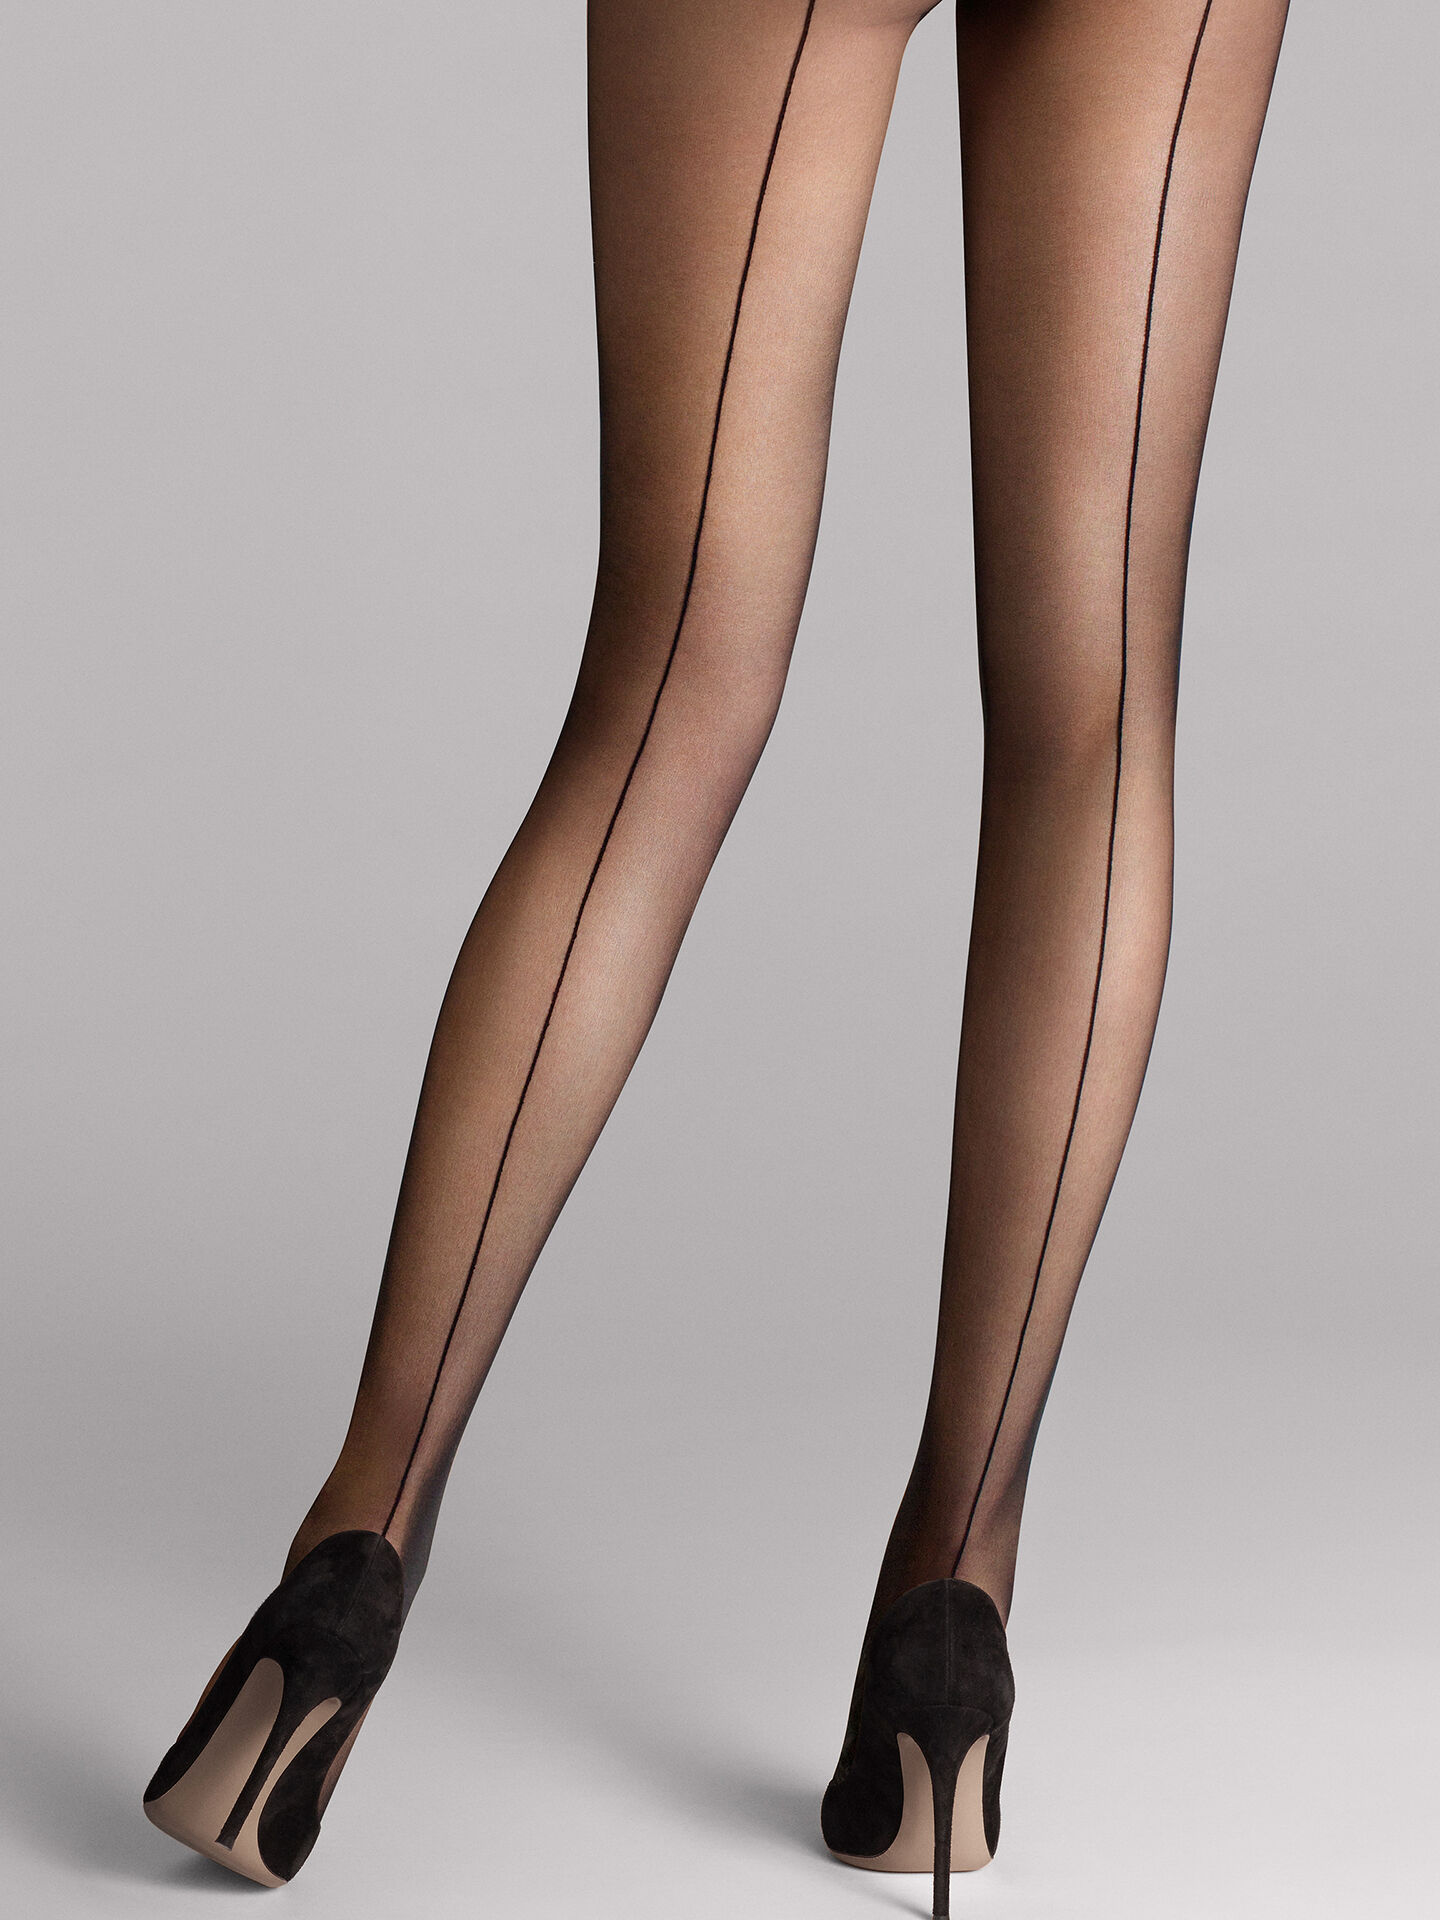 Collants Femme Wolford Pure 10